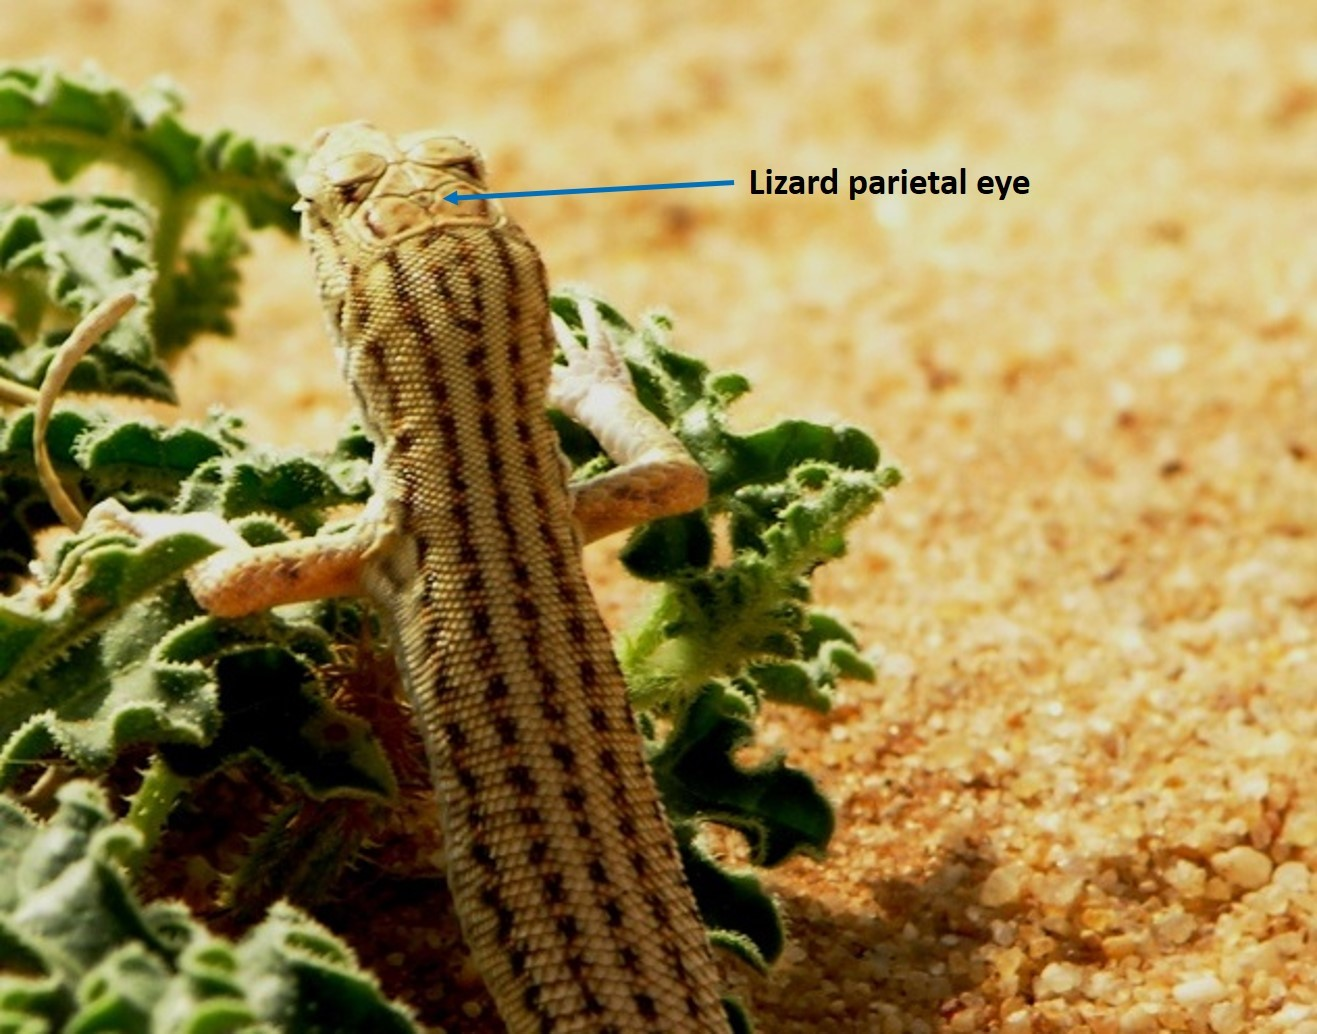 Parietal Eye - Saudi Lizard